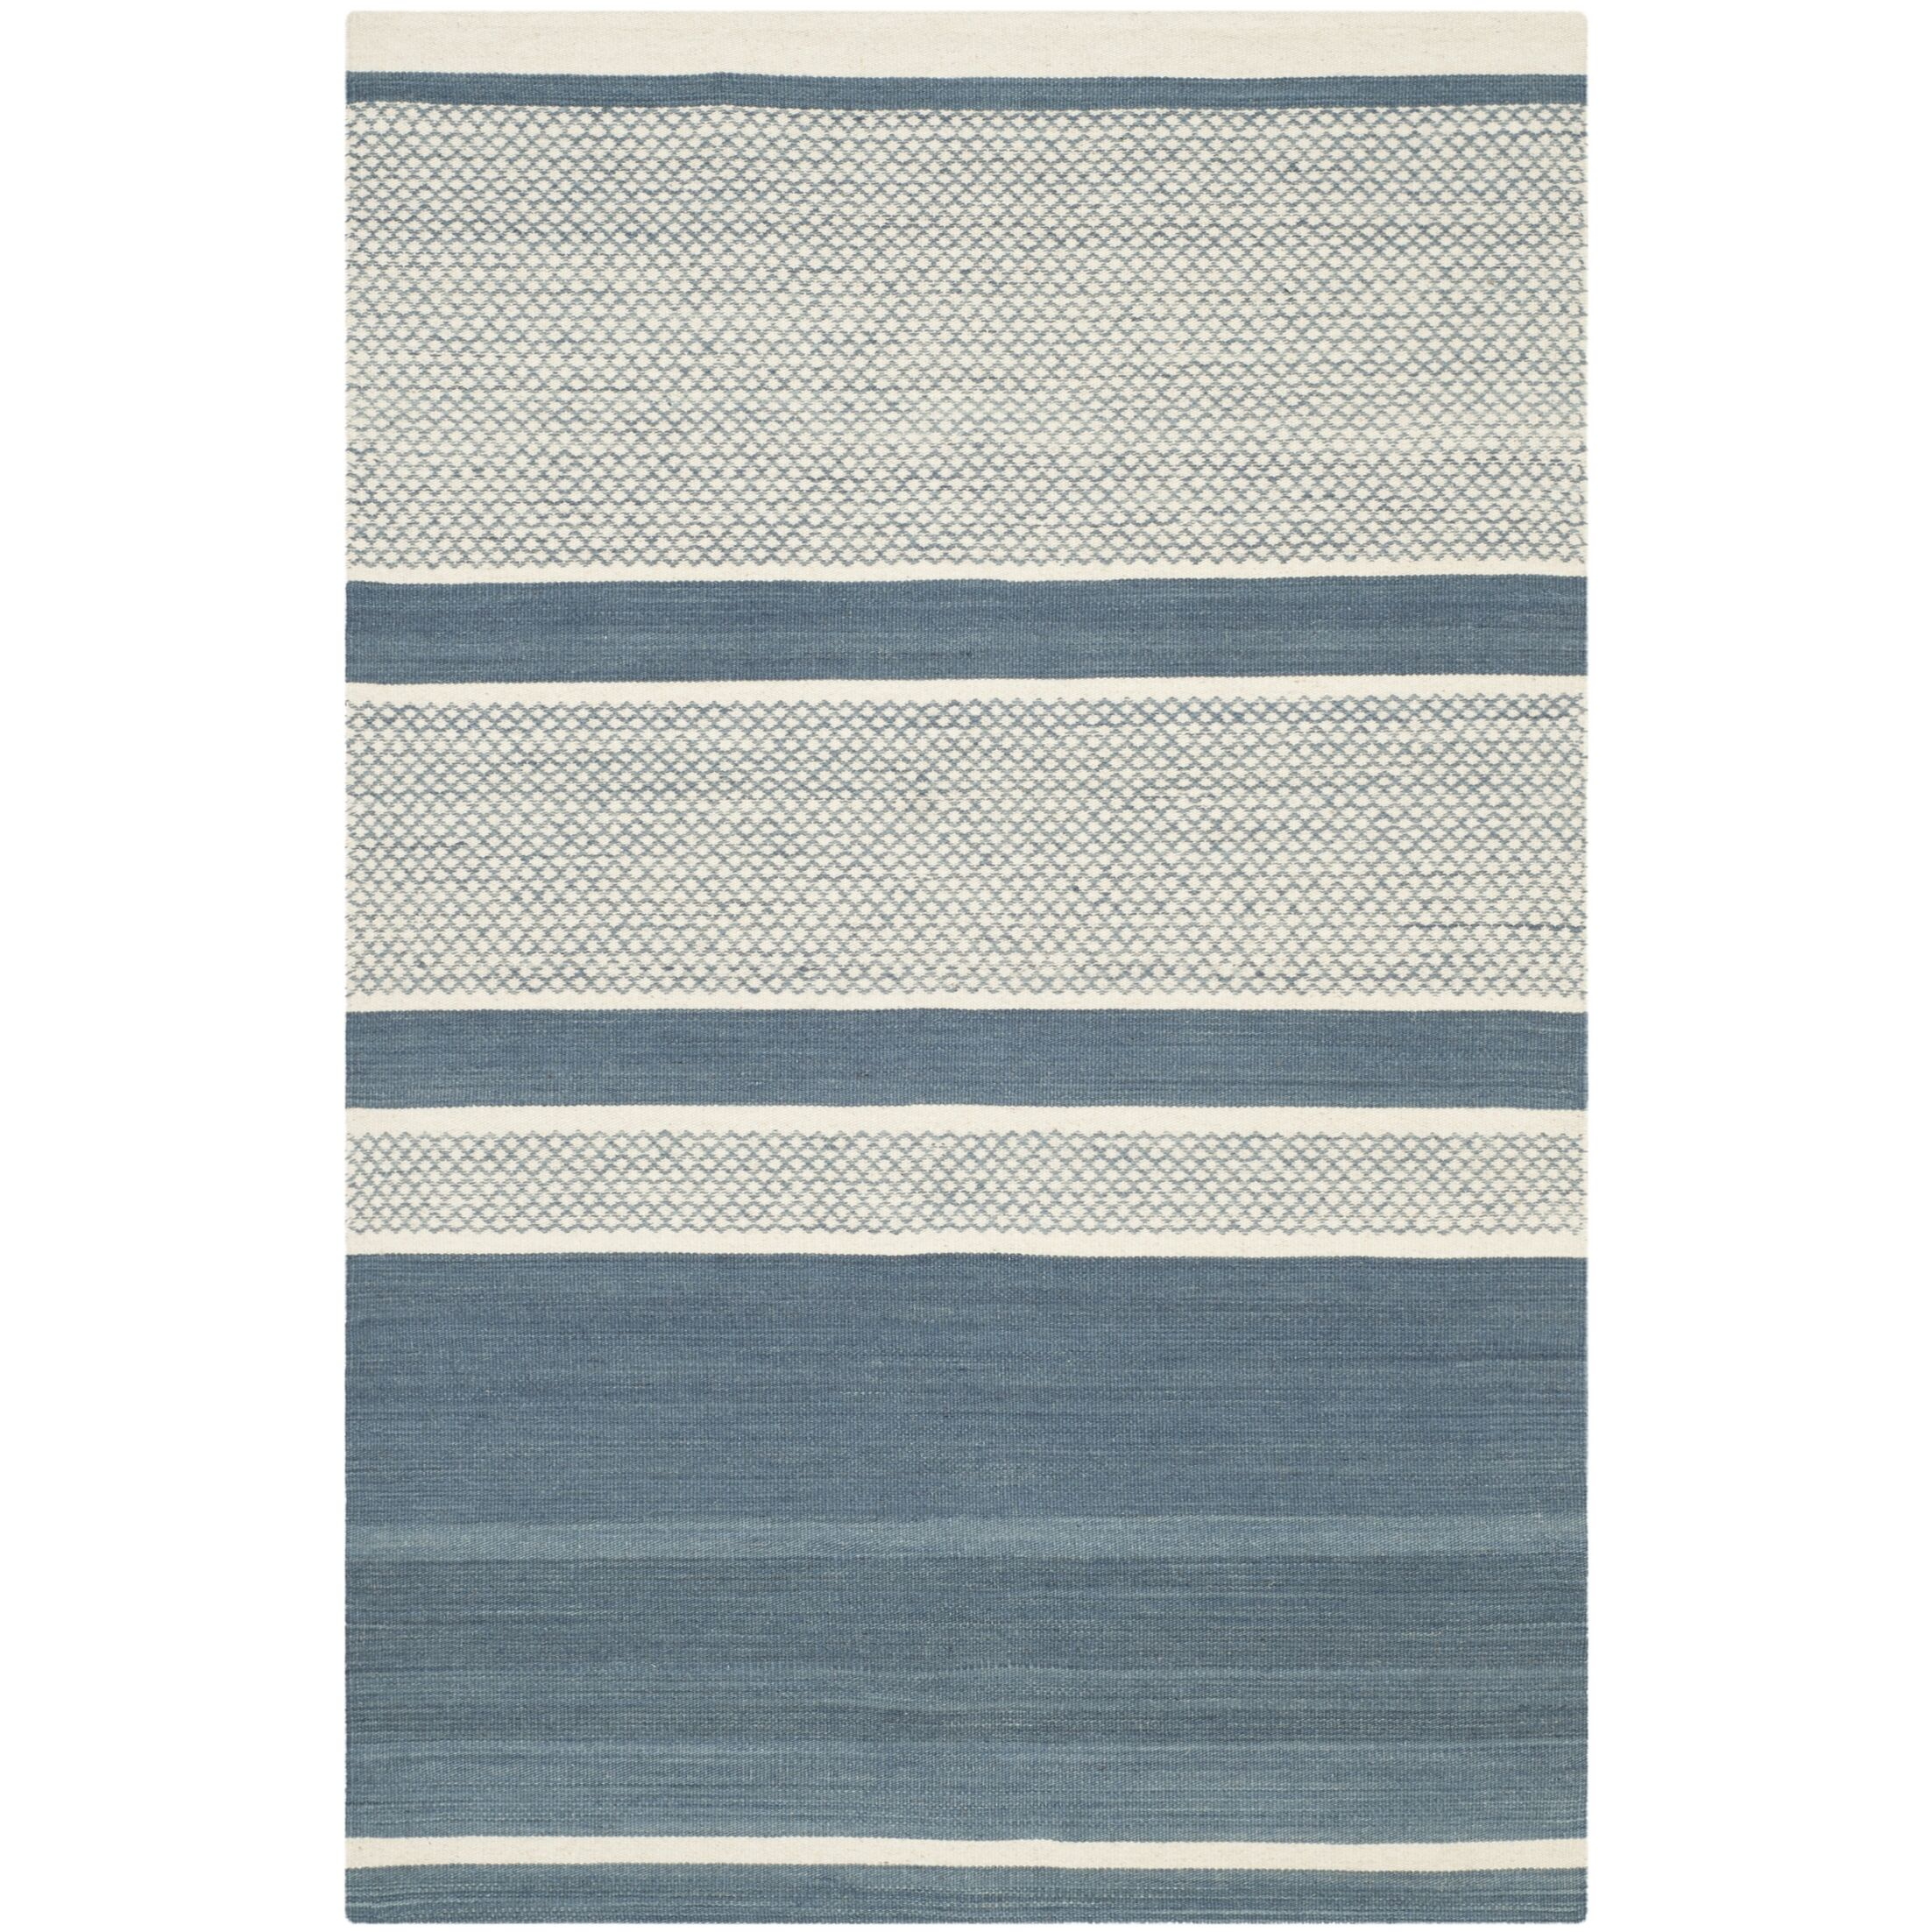 Tricia Hand-Woven Cotton Area Rug Rug Size: Rectangle 5' x 8'